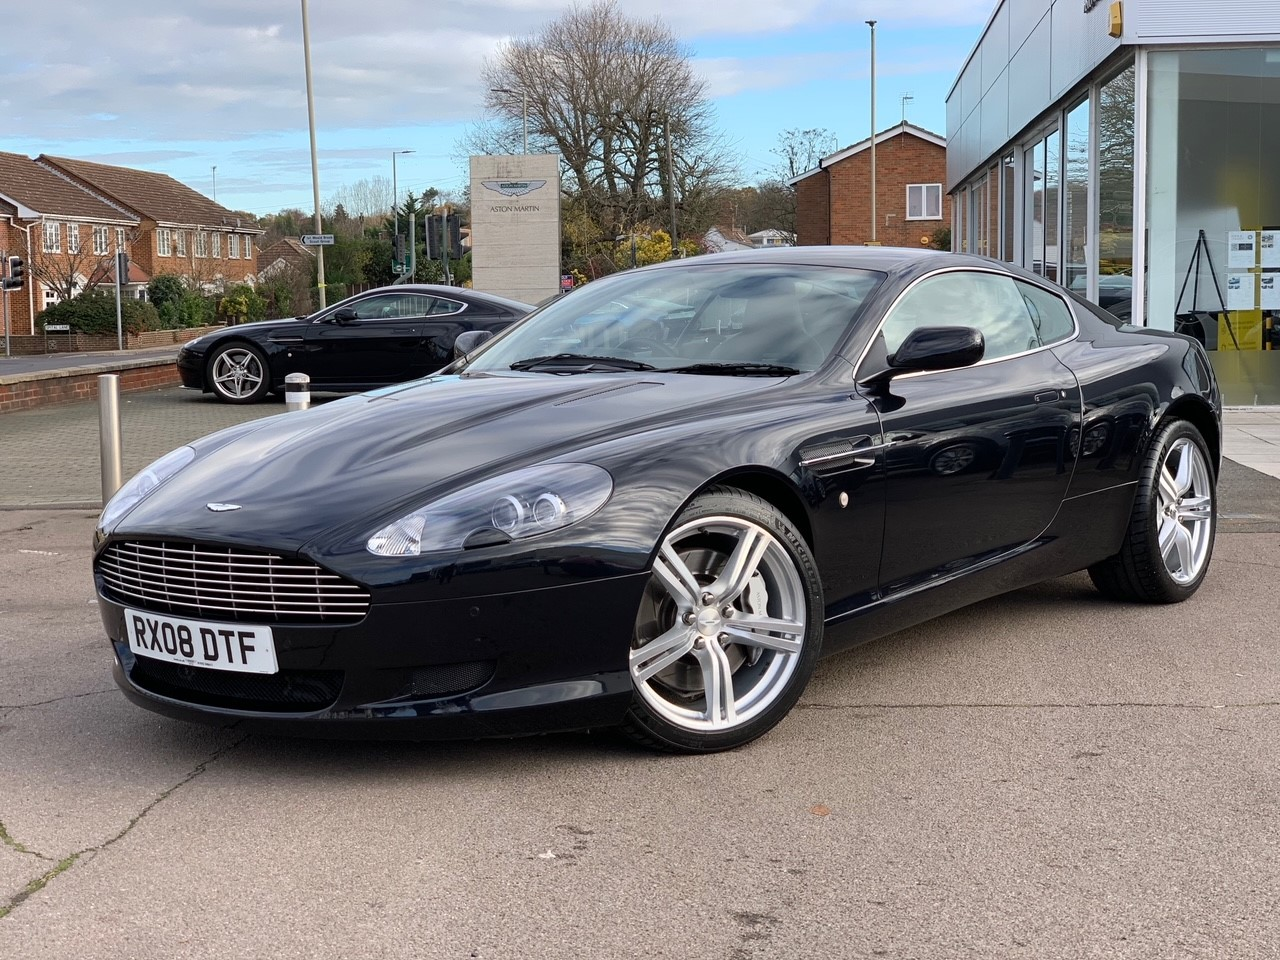 Aston Martin DB9 V12 2dr Touchtronic 5.9 Automatic Coupe (2008)